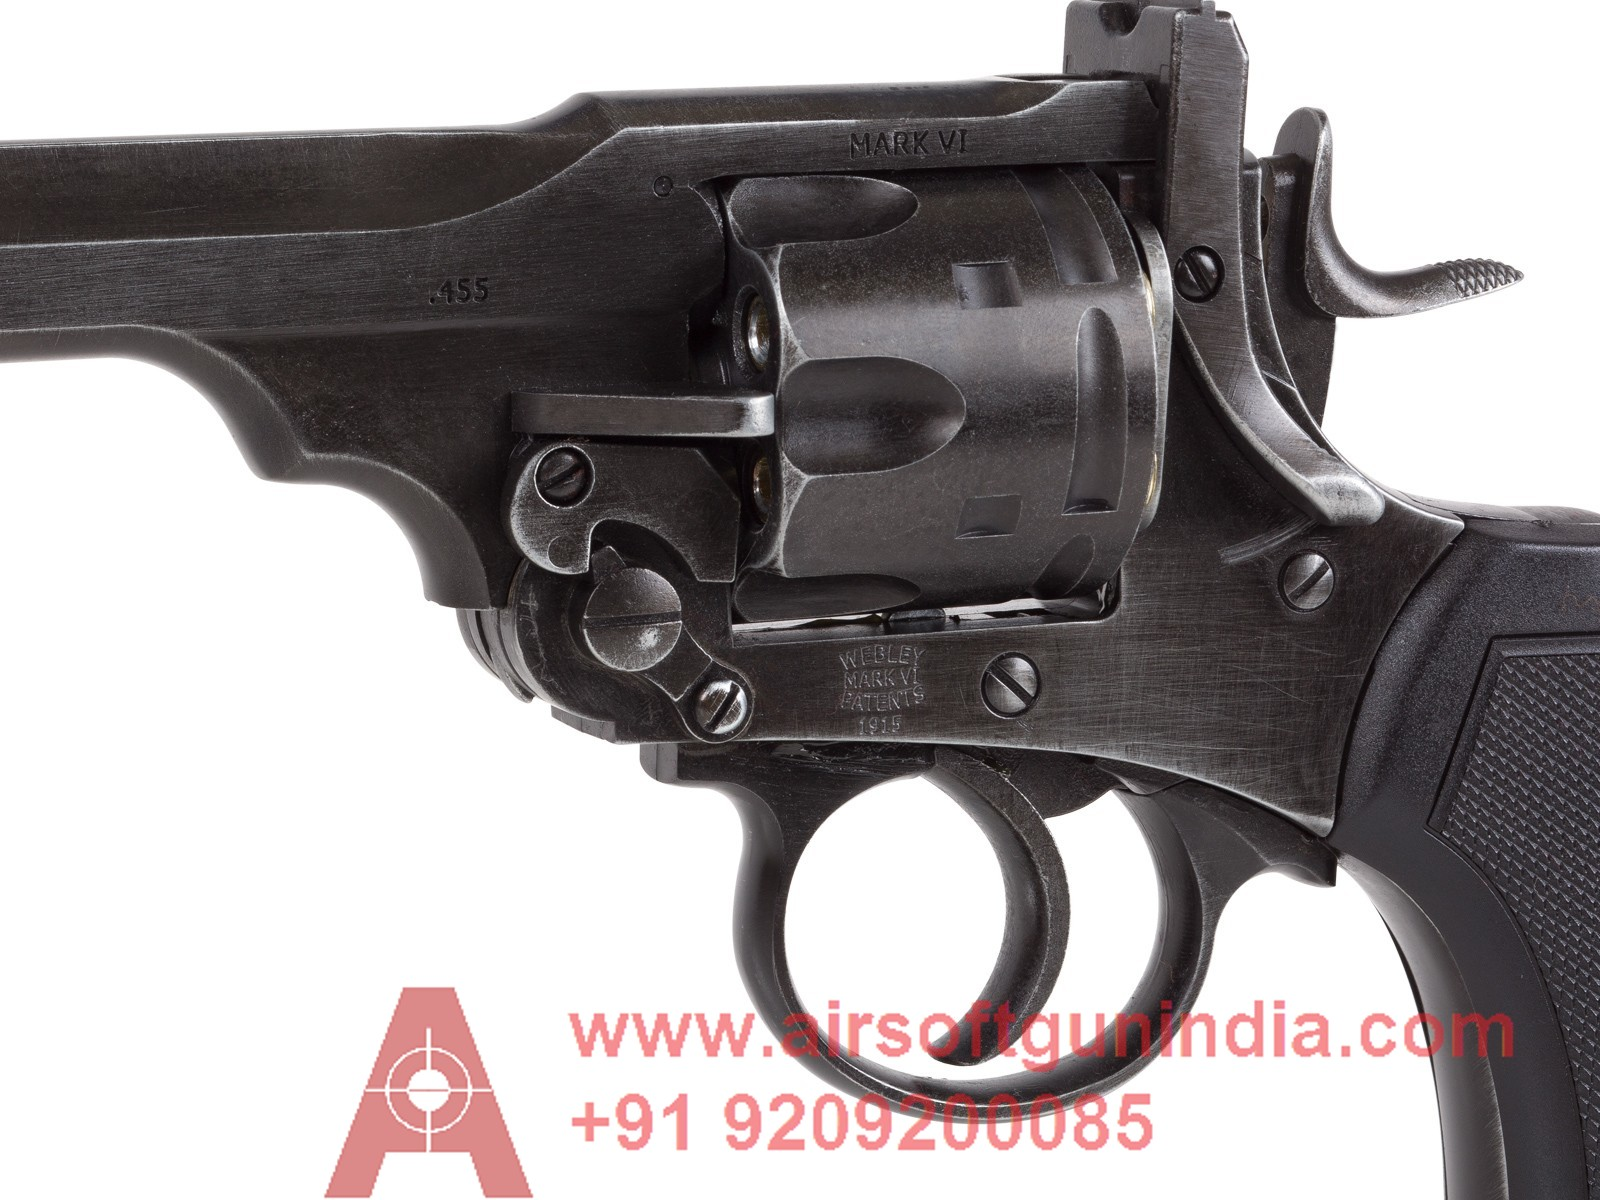 Webley MKVI Co2 Pellet Revolver By Airsoft Gun India